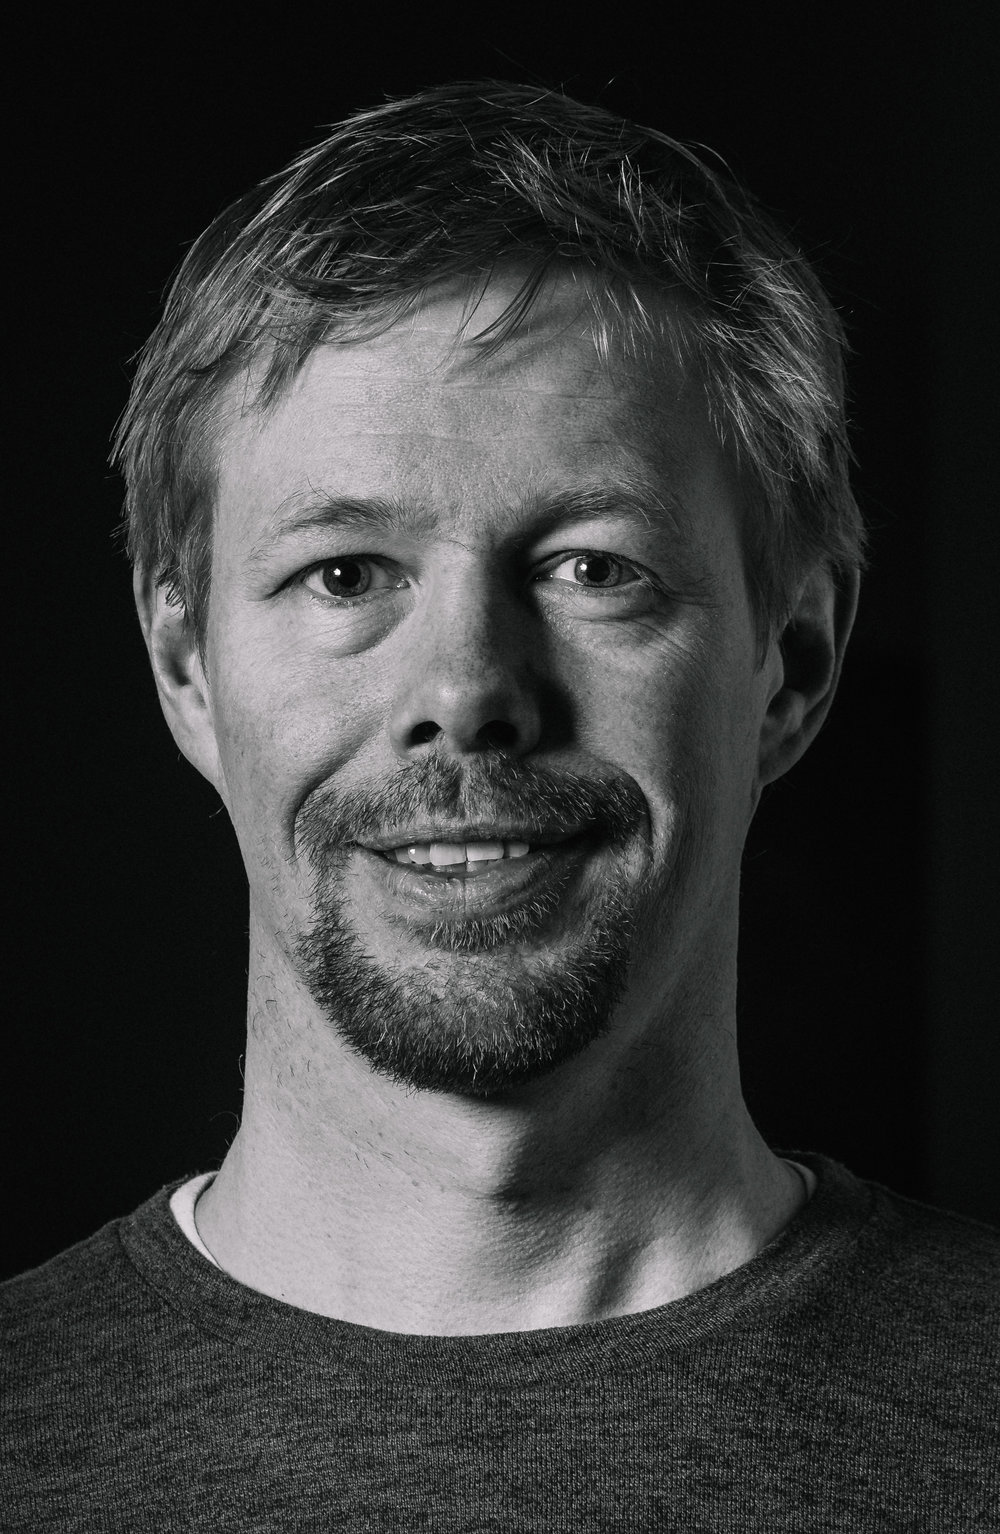 Birgir Magnusson Mechanical designer. Previously Senior Designer at Microsoft and Principal Packaging Designer at Nokia. Cand. Scient., Mechanical and Industrial Engineering, University of Iceland.